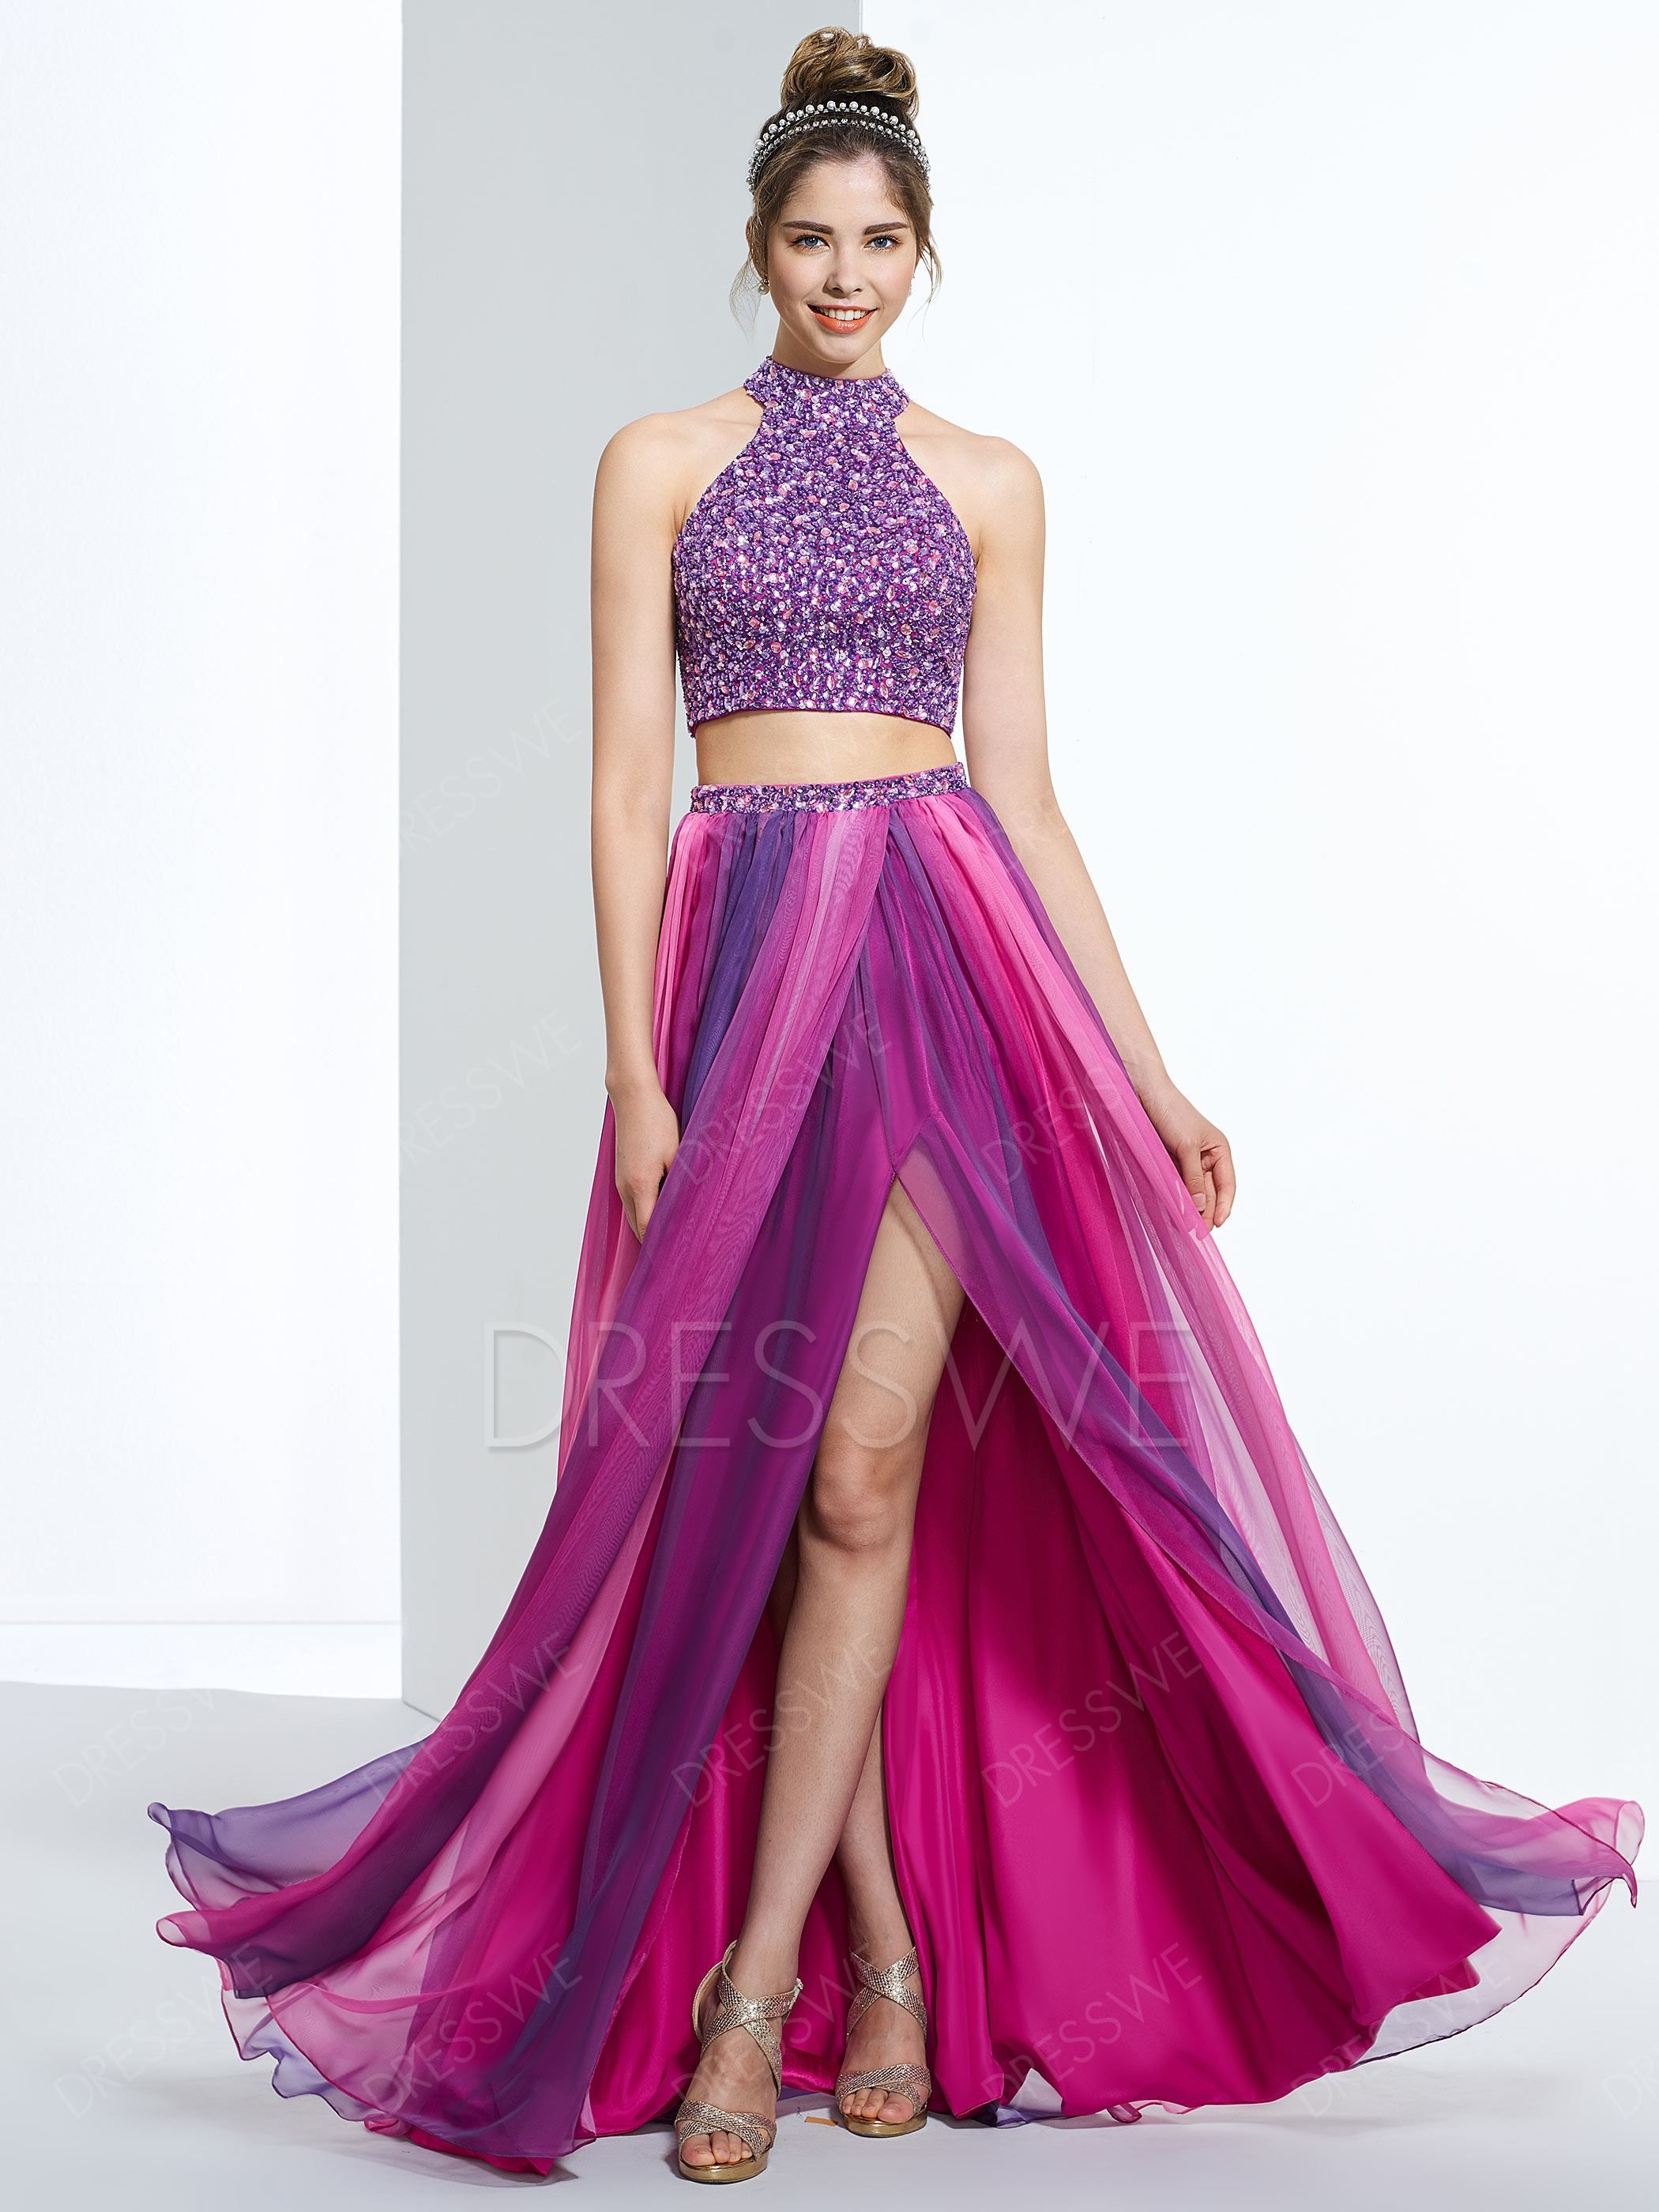 6940a02eab07a Buy Fancy Halter Beaded Slit Front Two Pieces Crop Top Prom Dress ...